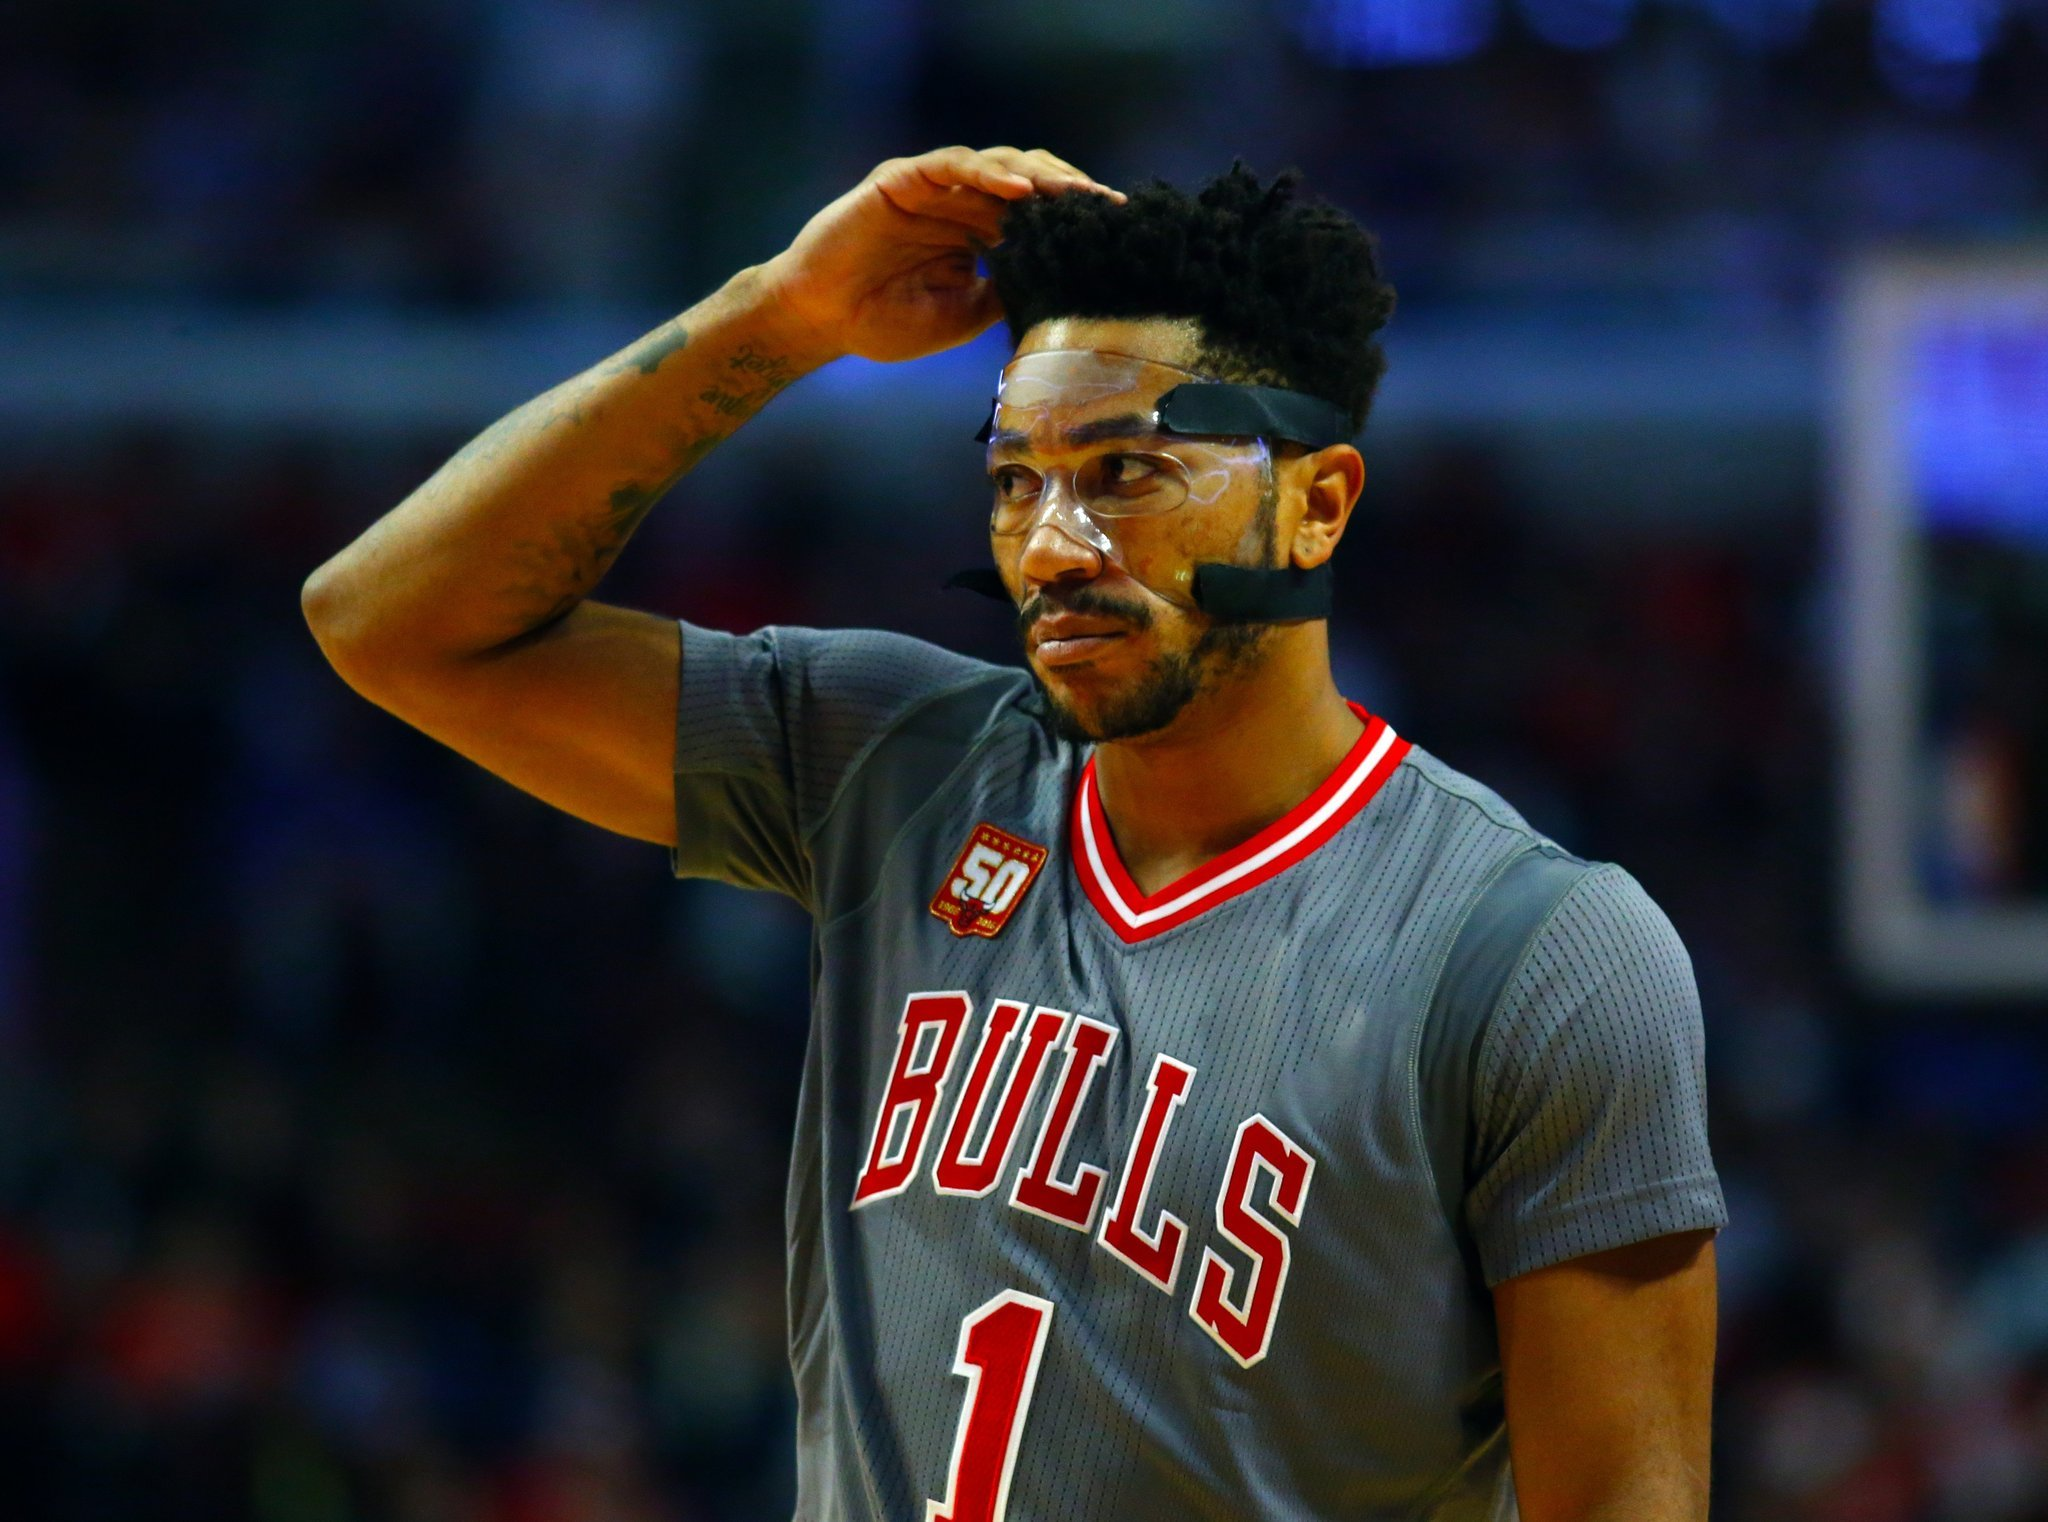 Bulls  Derrick Rose a one-man gang that couldn t shoot straight ... 08623bbec